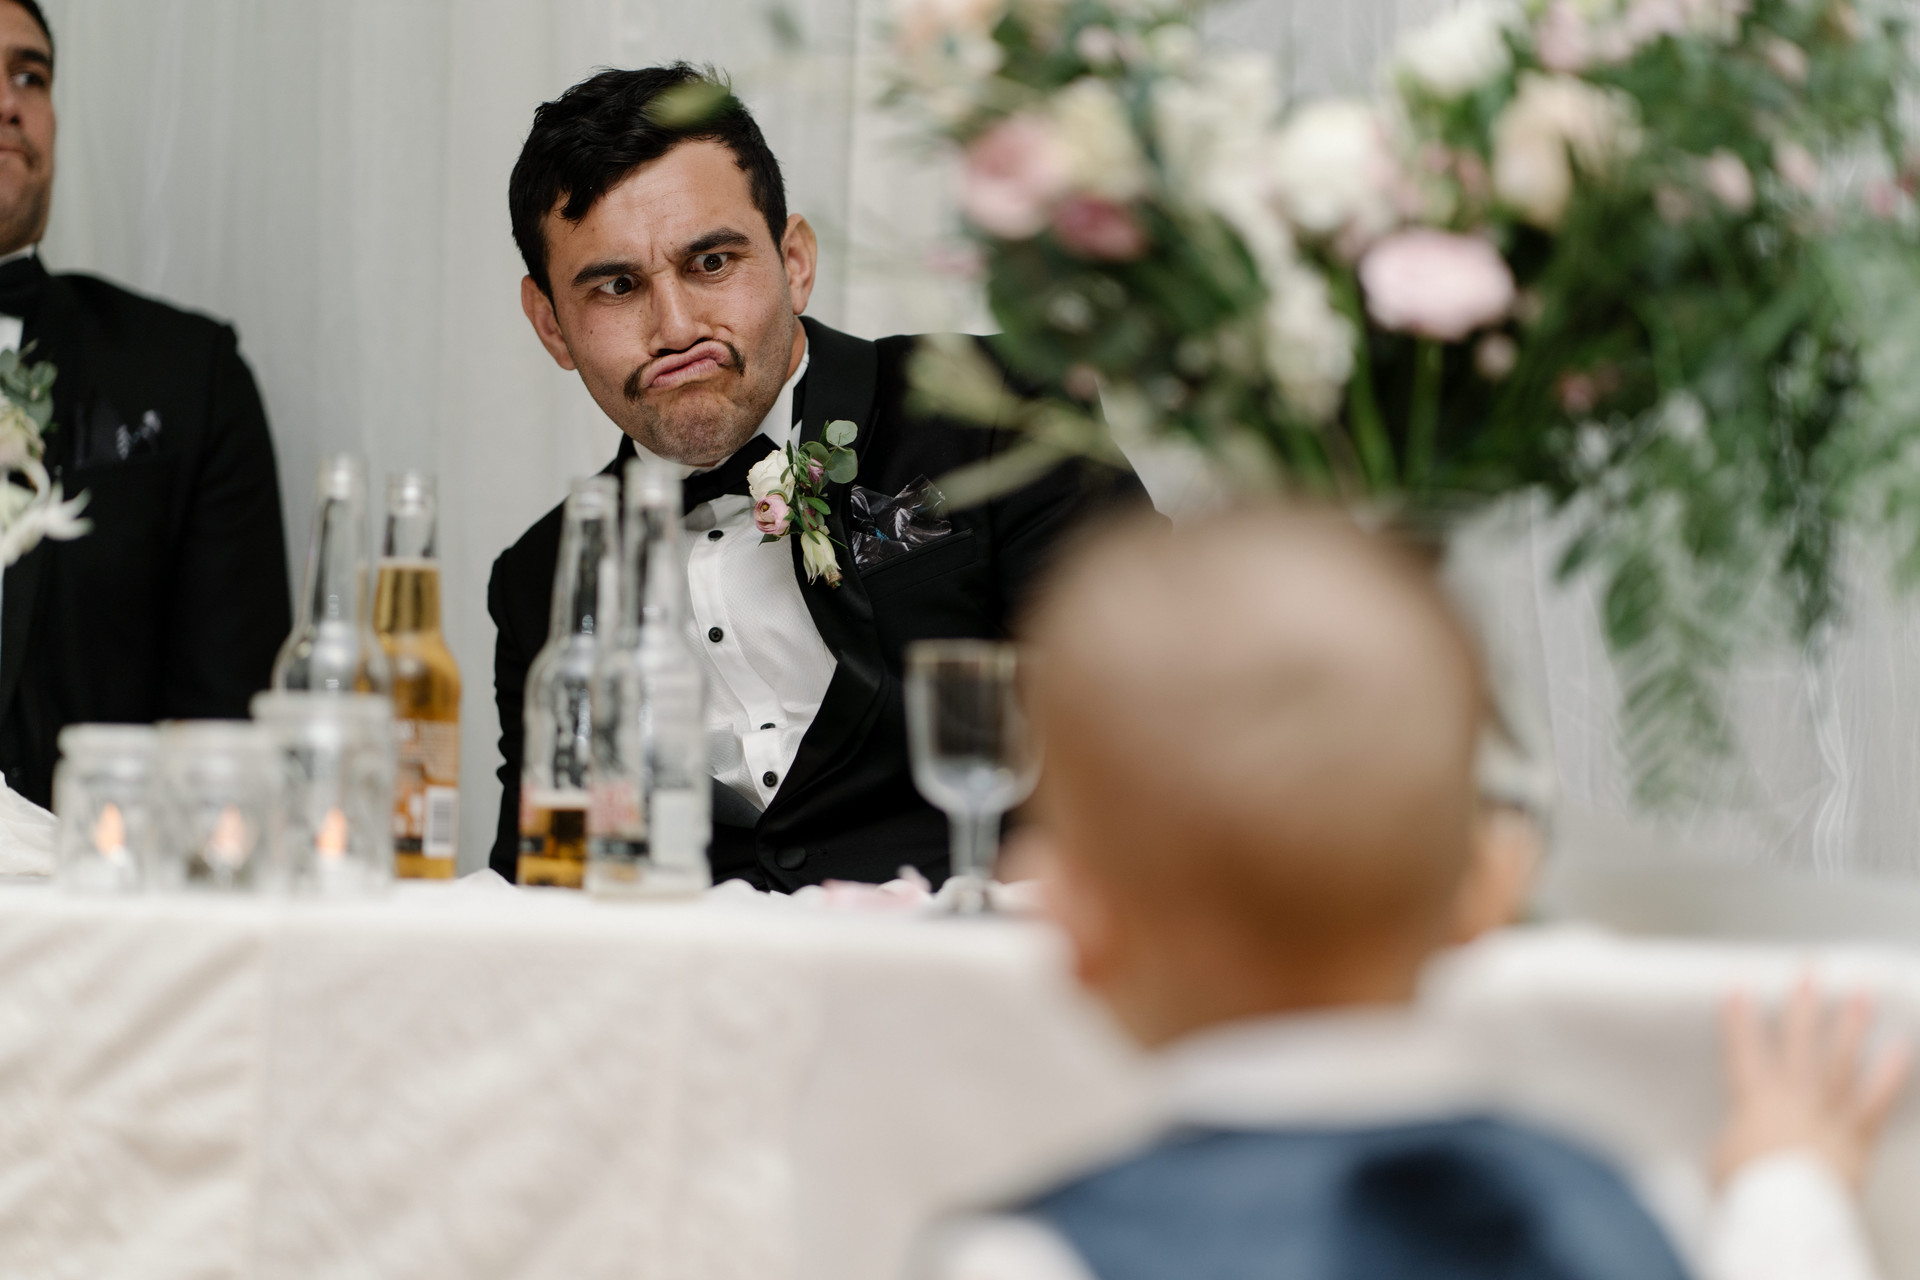 wedding guest at table